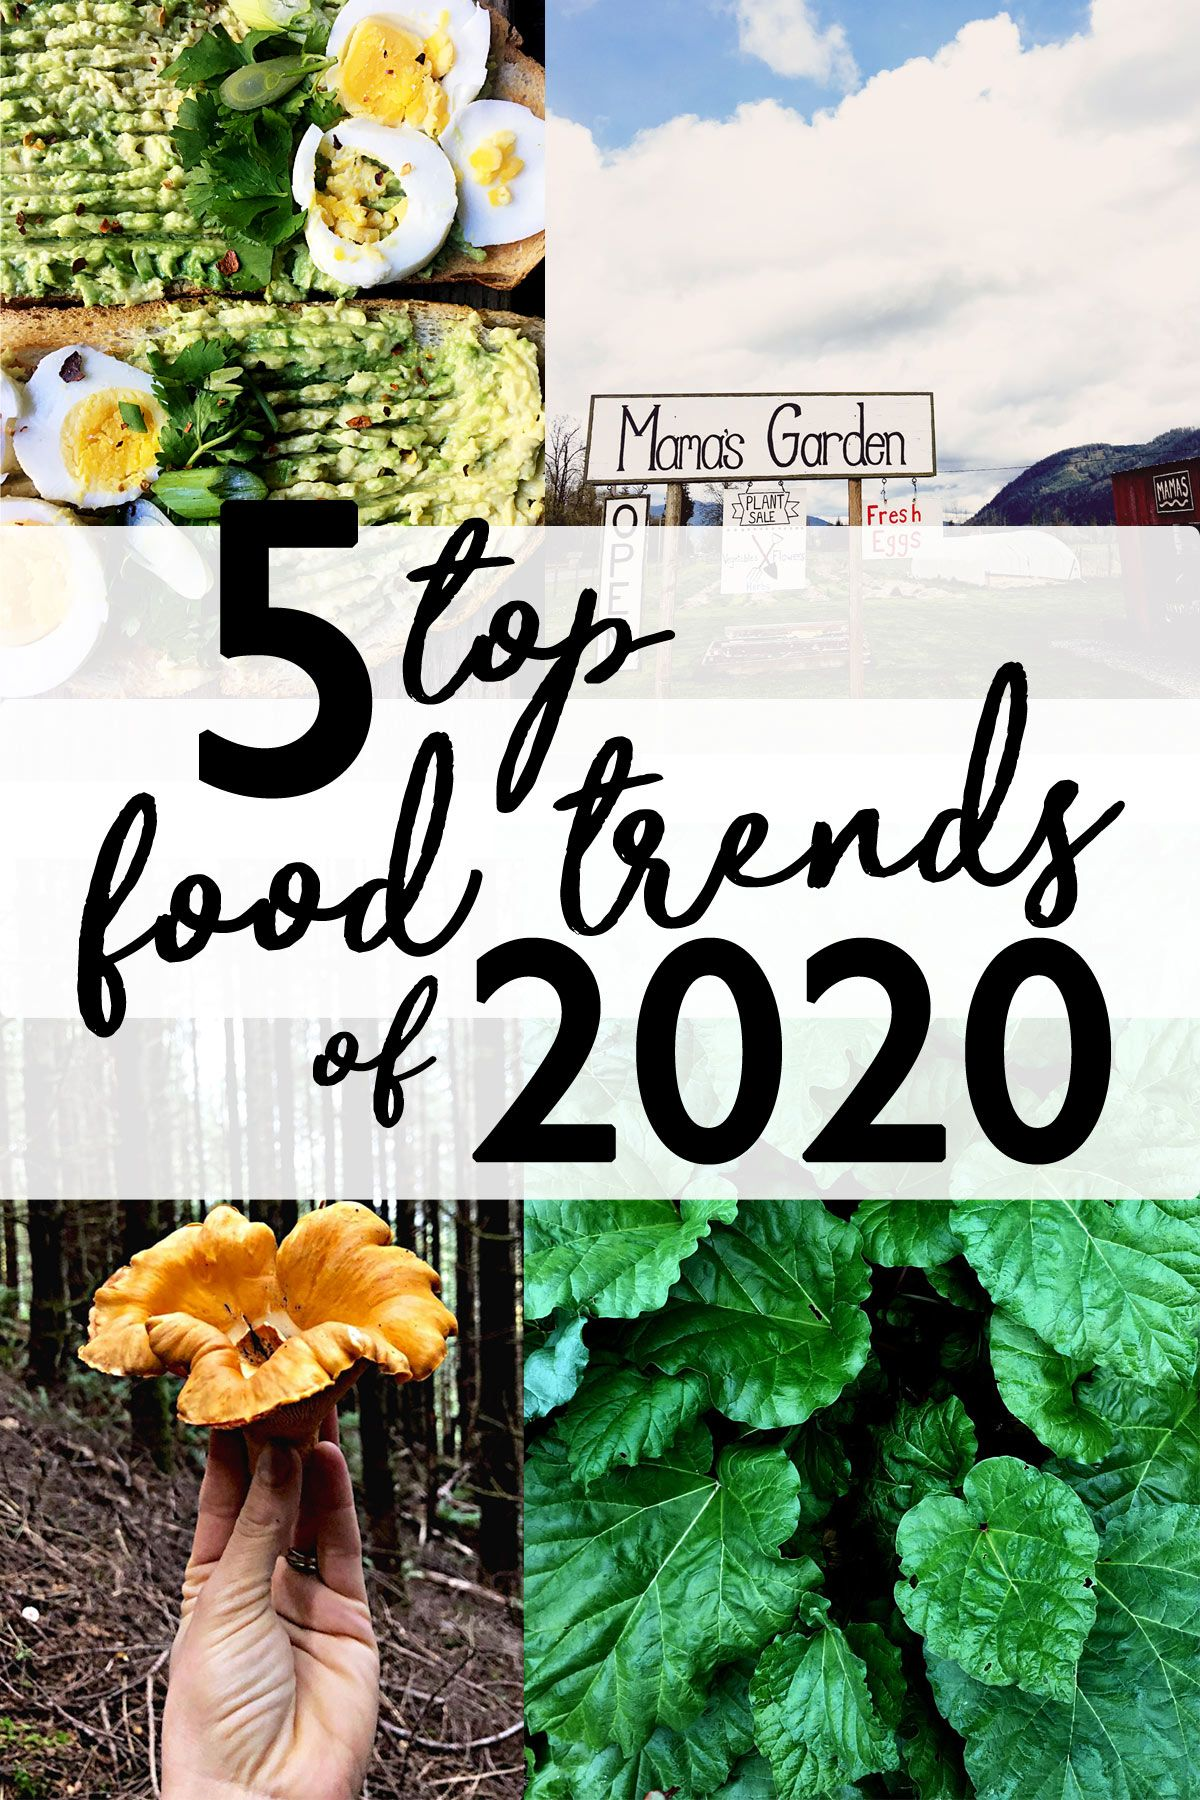 Top 5 Best And Worst Food Trends 2020 In 2020 Food Trends Beautiful Food Styling Best Food Photography